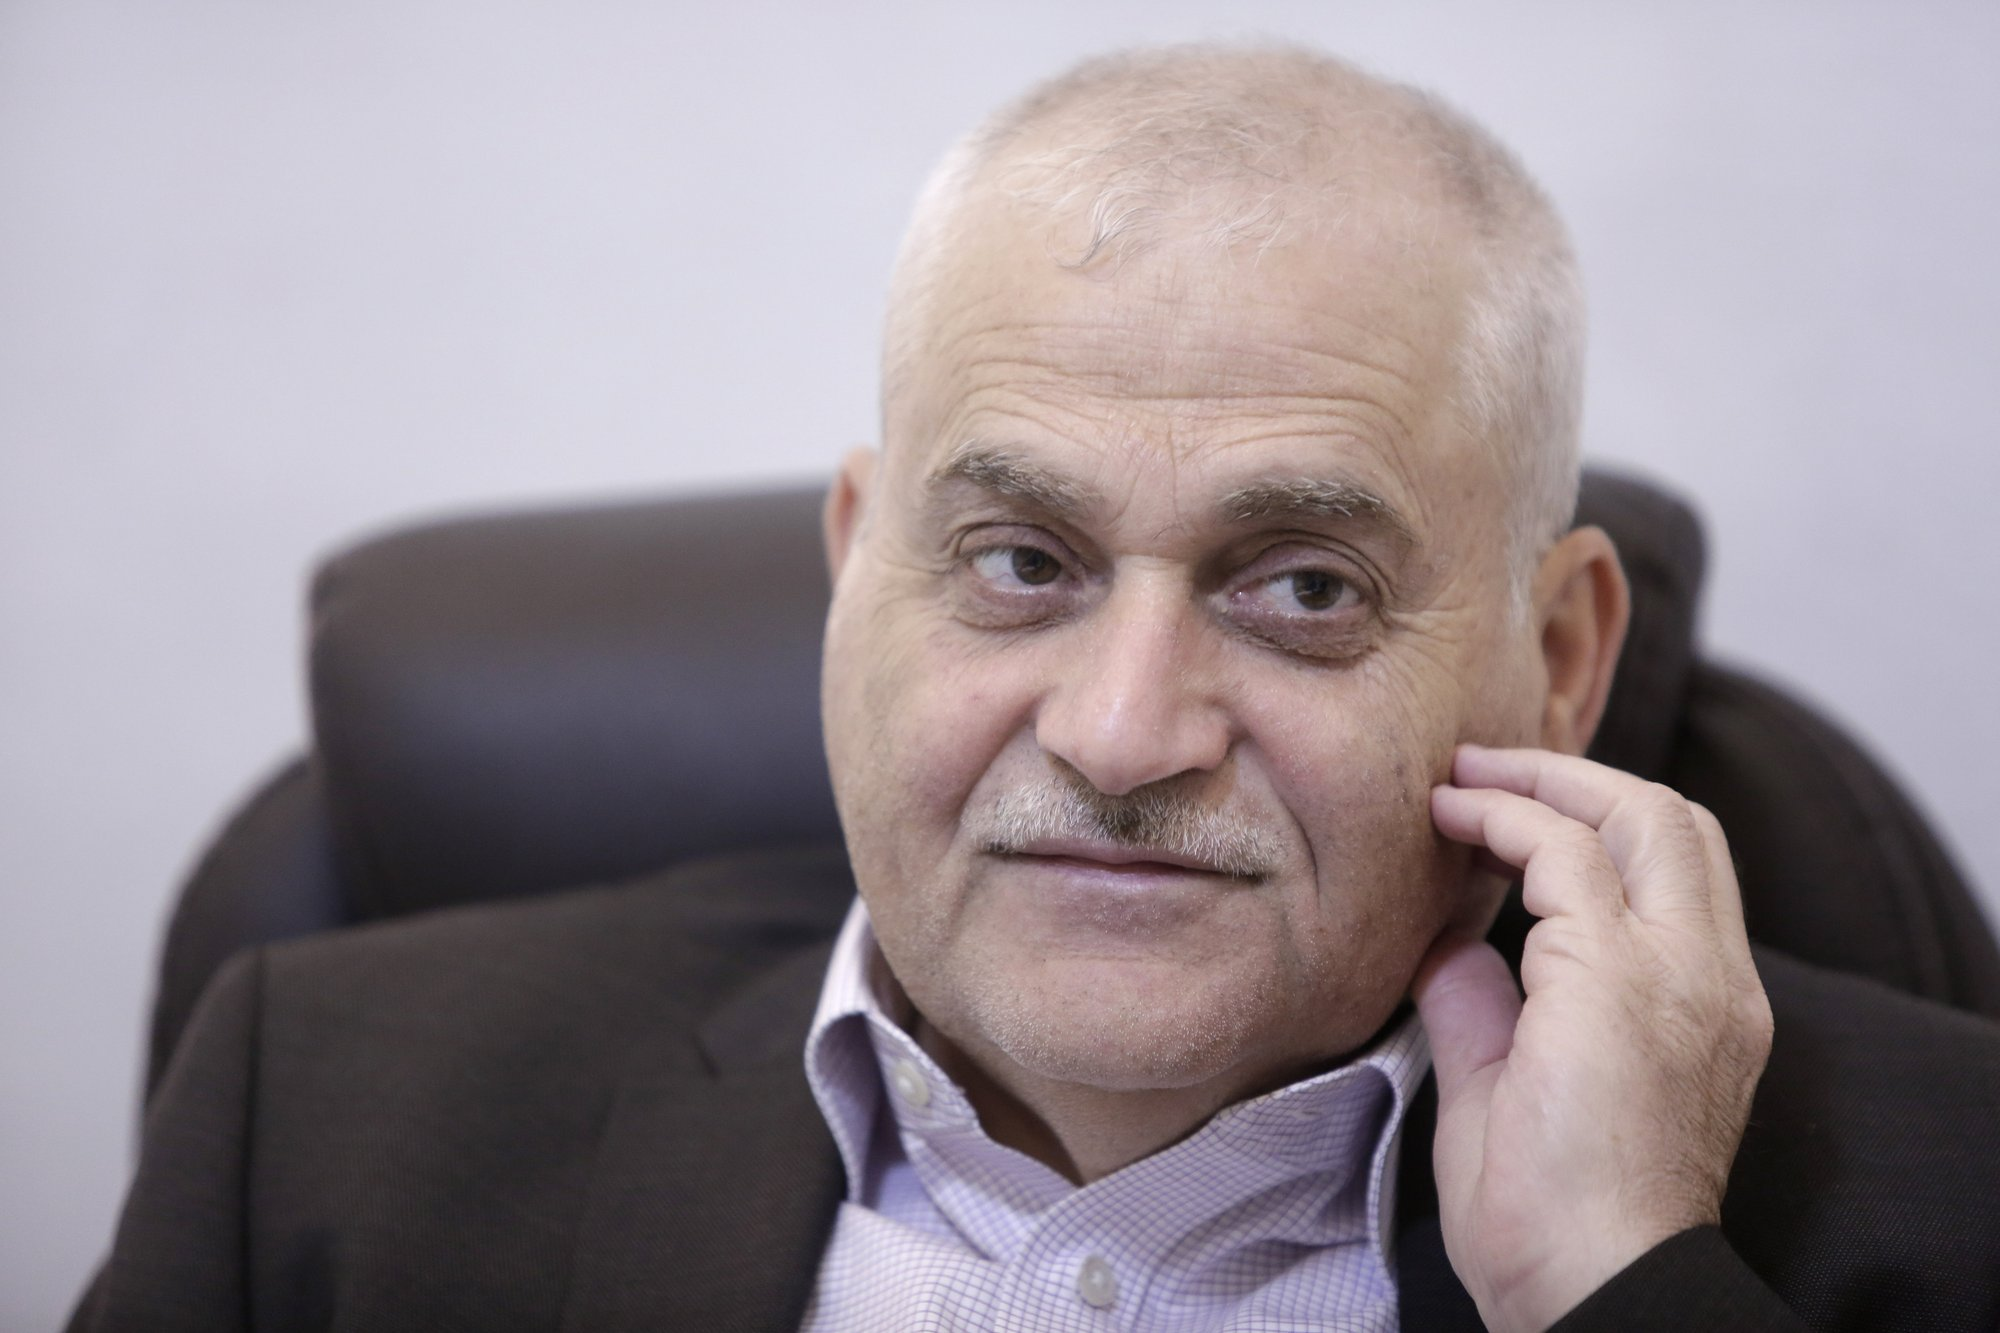 Lebanon health minister says no concerns over sanctions